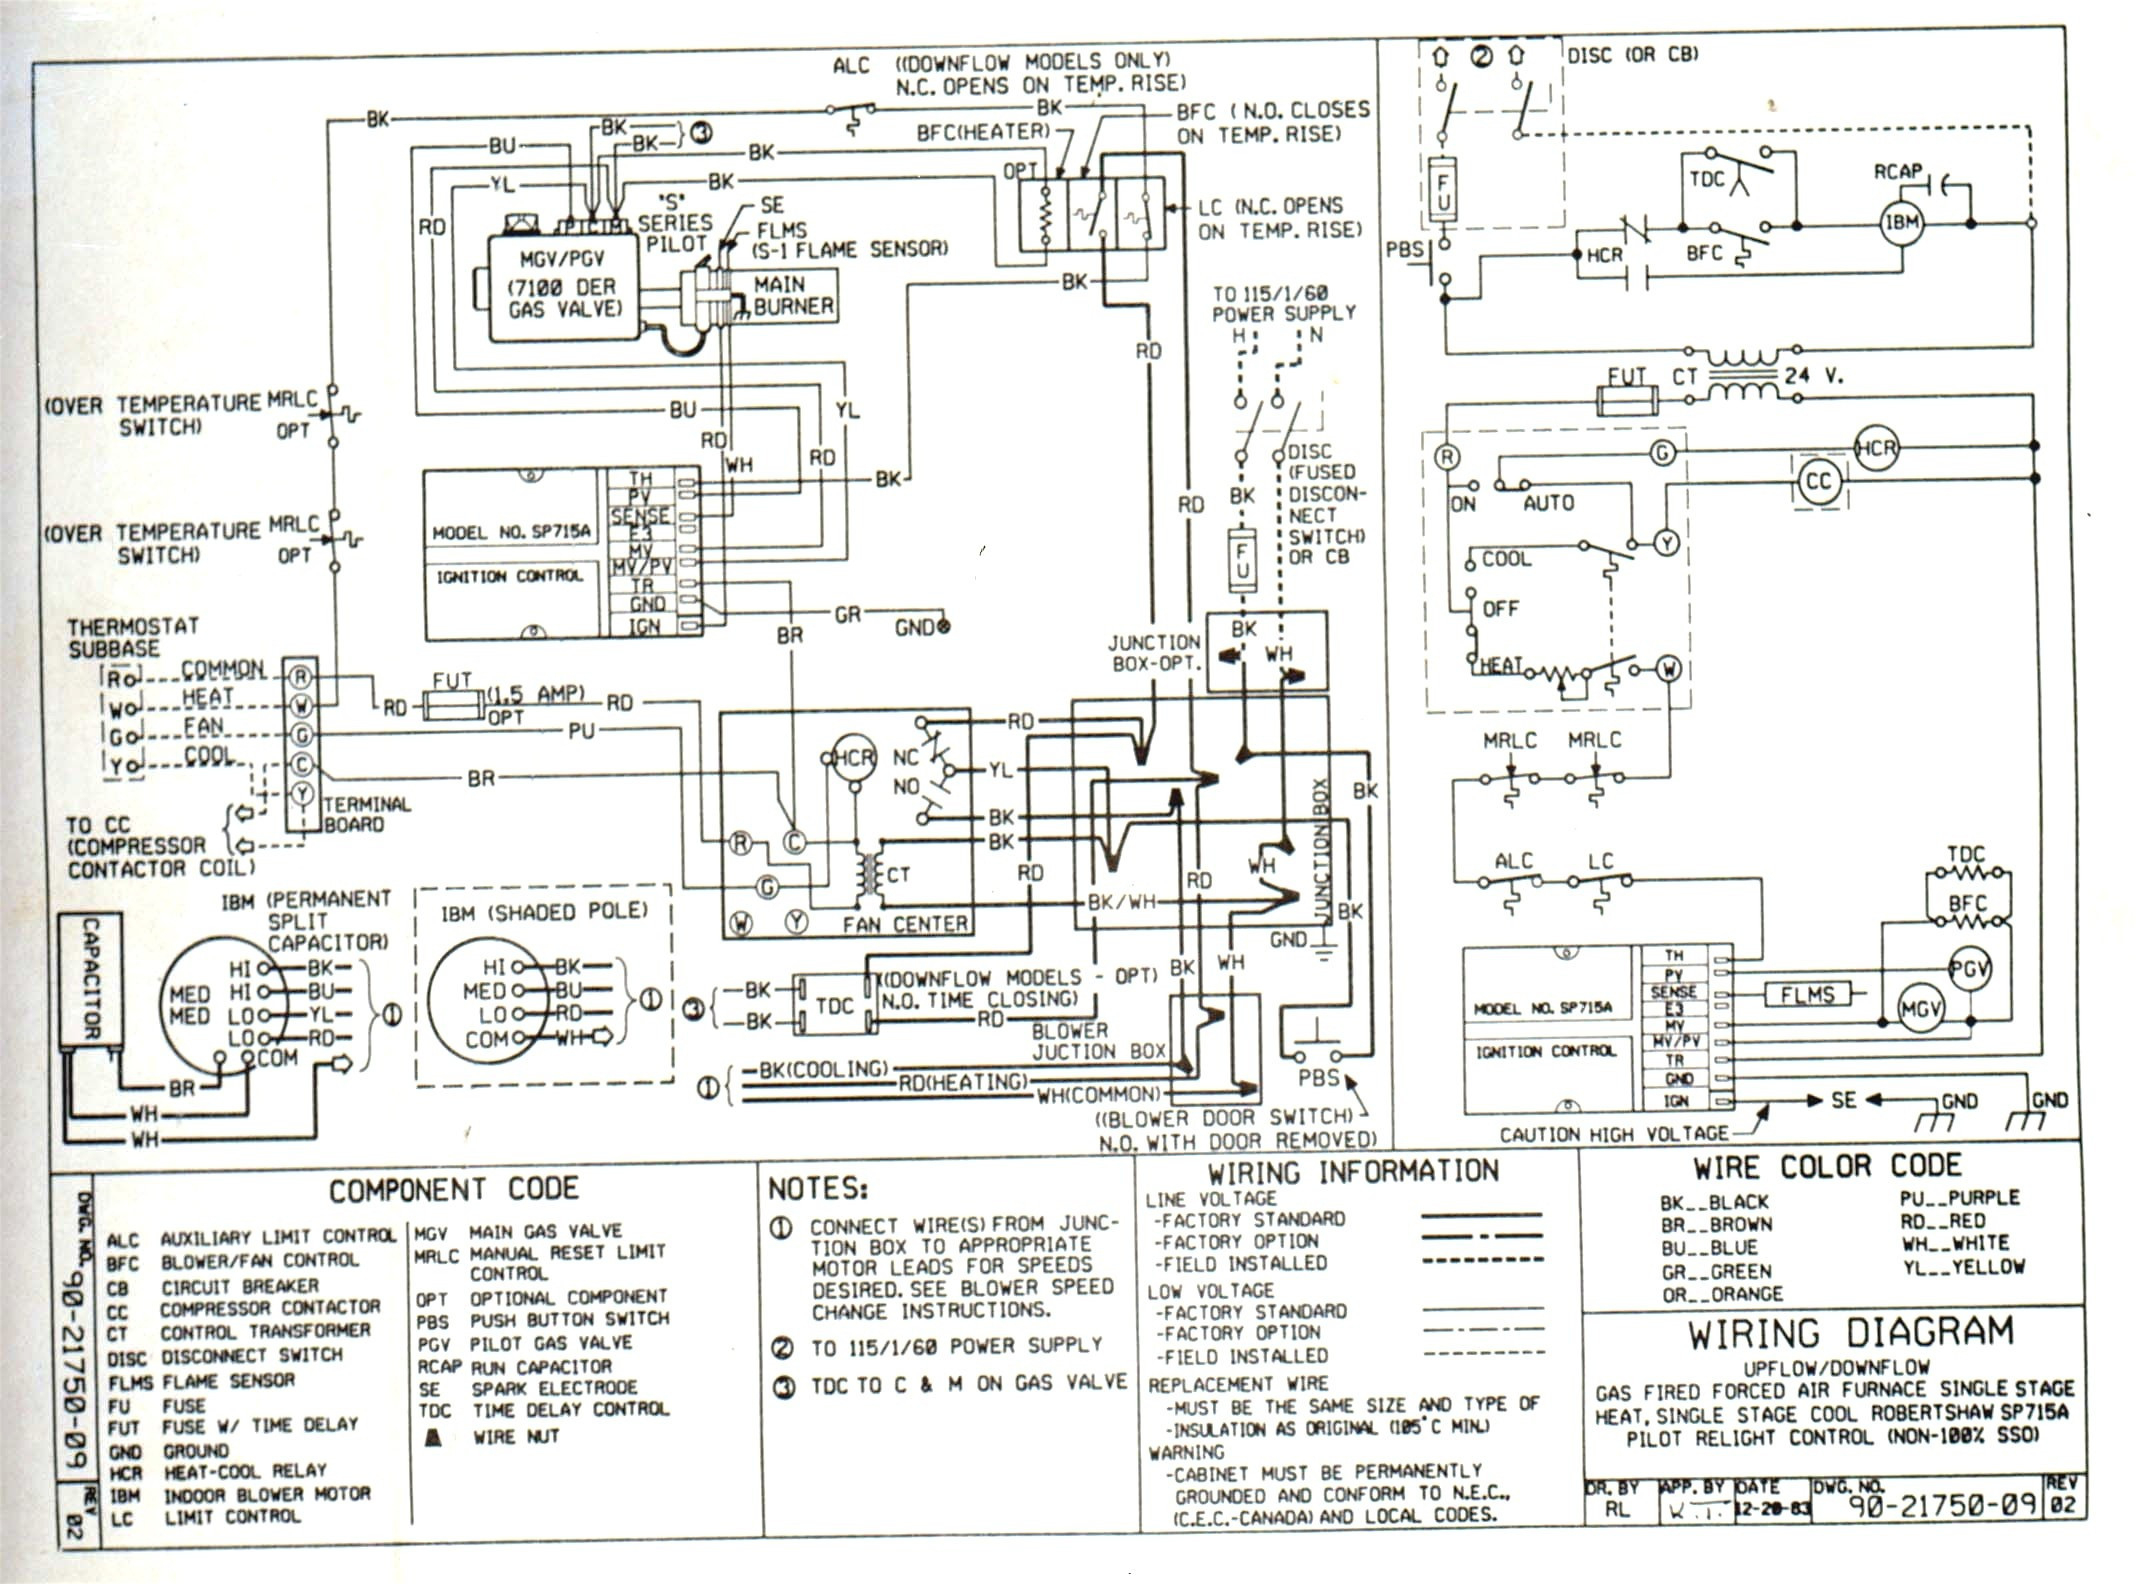 Ac Furnace Blower Motor Wiring Diagram | Wiring Liry on